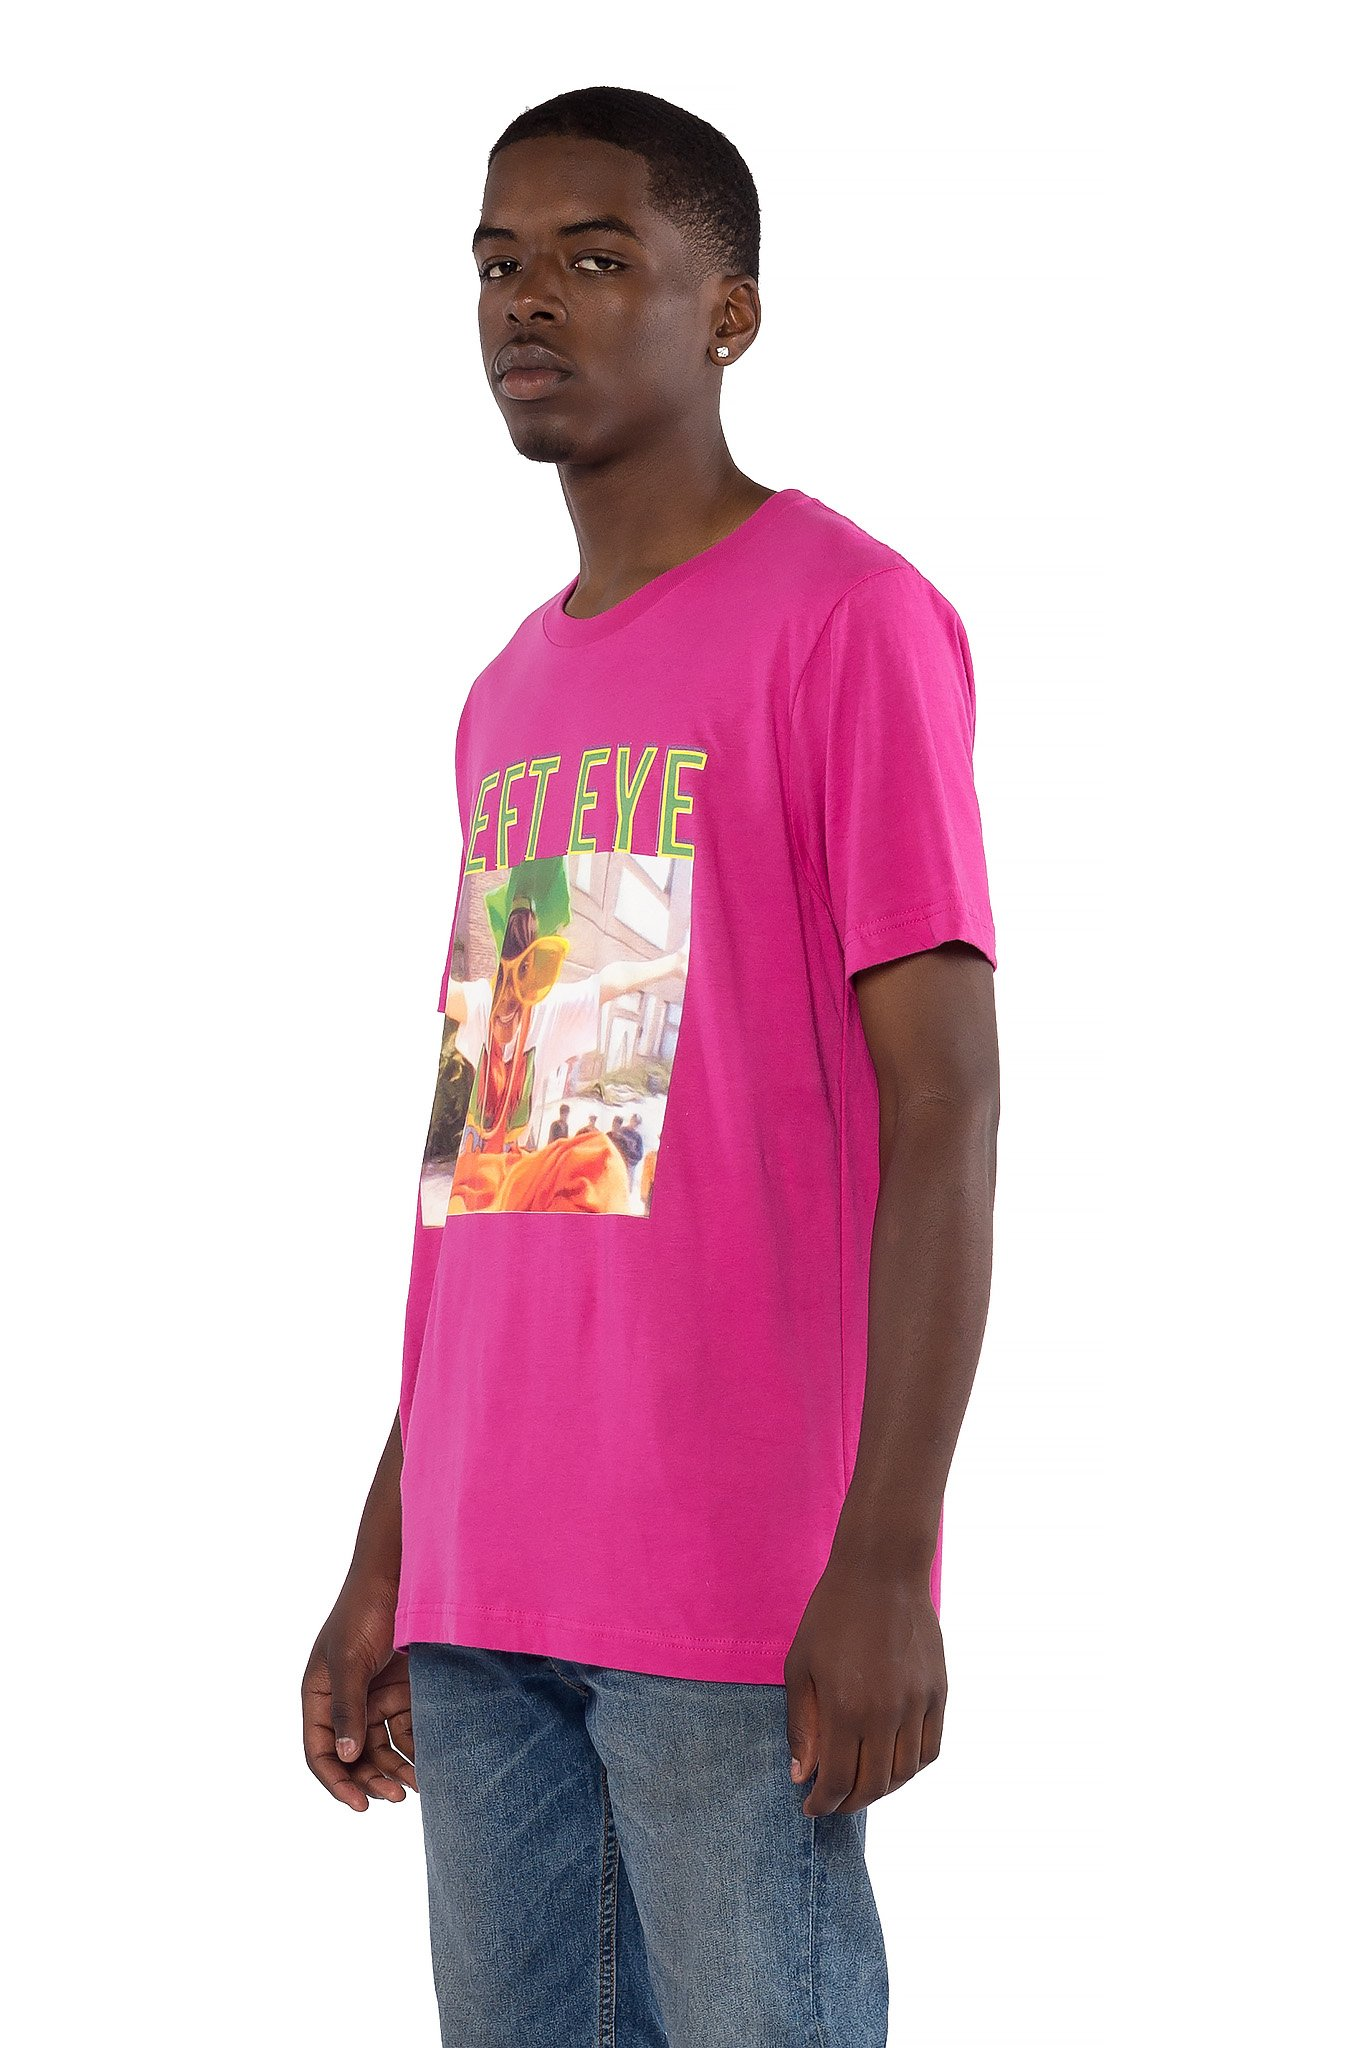 Cross_Colours_Left_Eye_Glasses_TShirt__Magenta